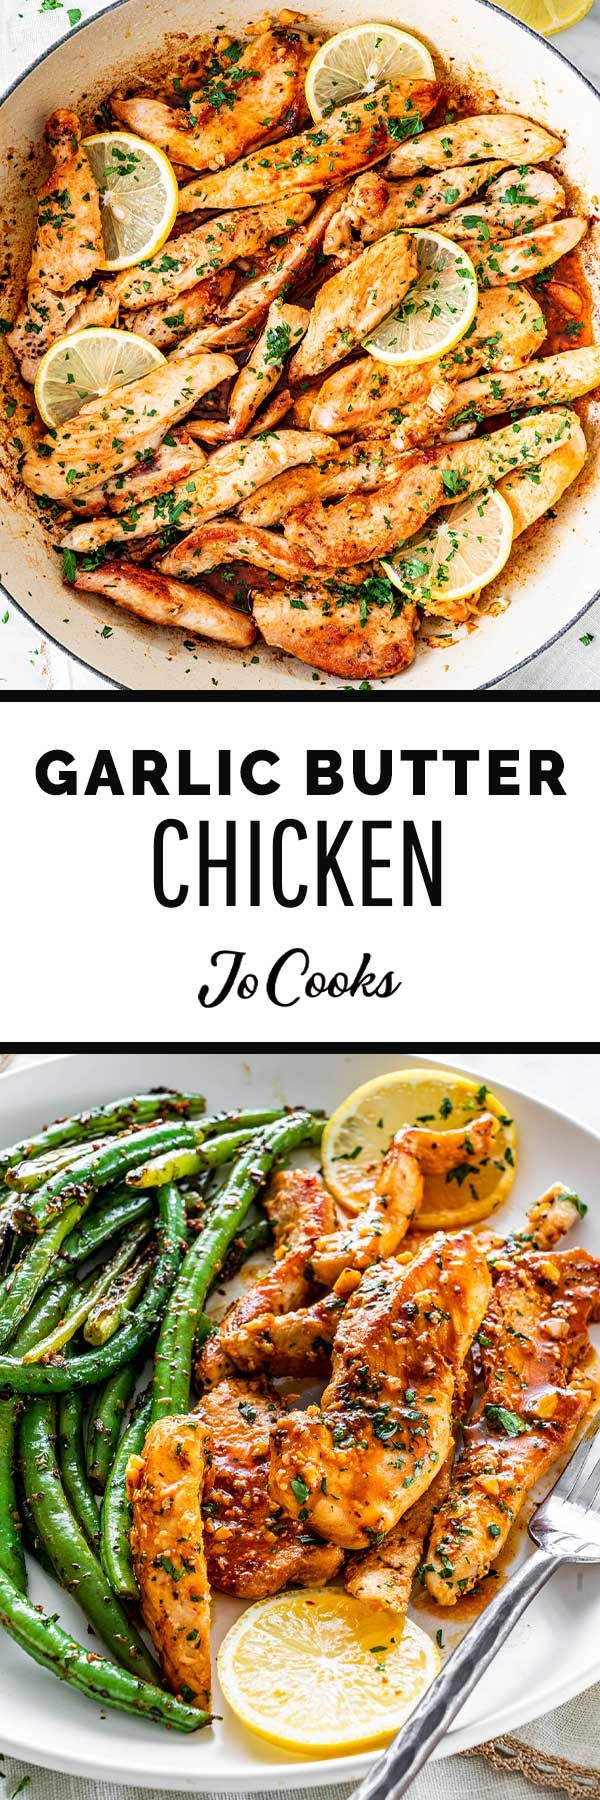 This Garlic Butter Chicken is simple and delicious! Juicy, tender, and full of flavor, this recipe is on its way to becoming your new favorite winner winner chicken dinner! #garlic #butter #chicken #20minutes #onepot